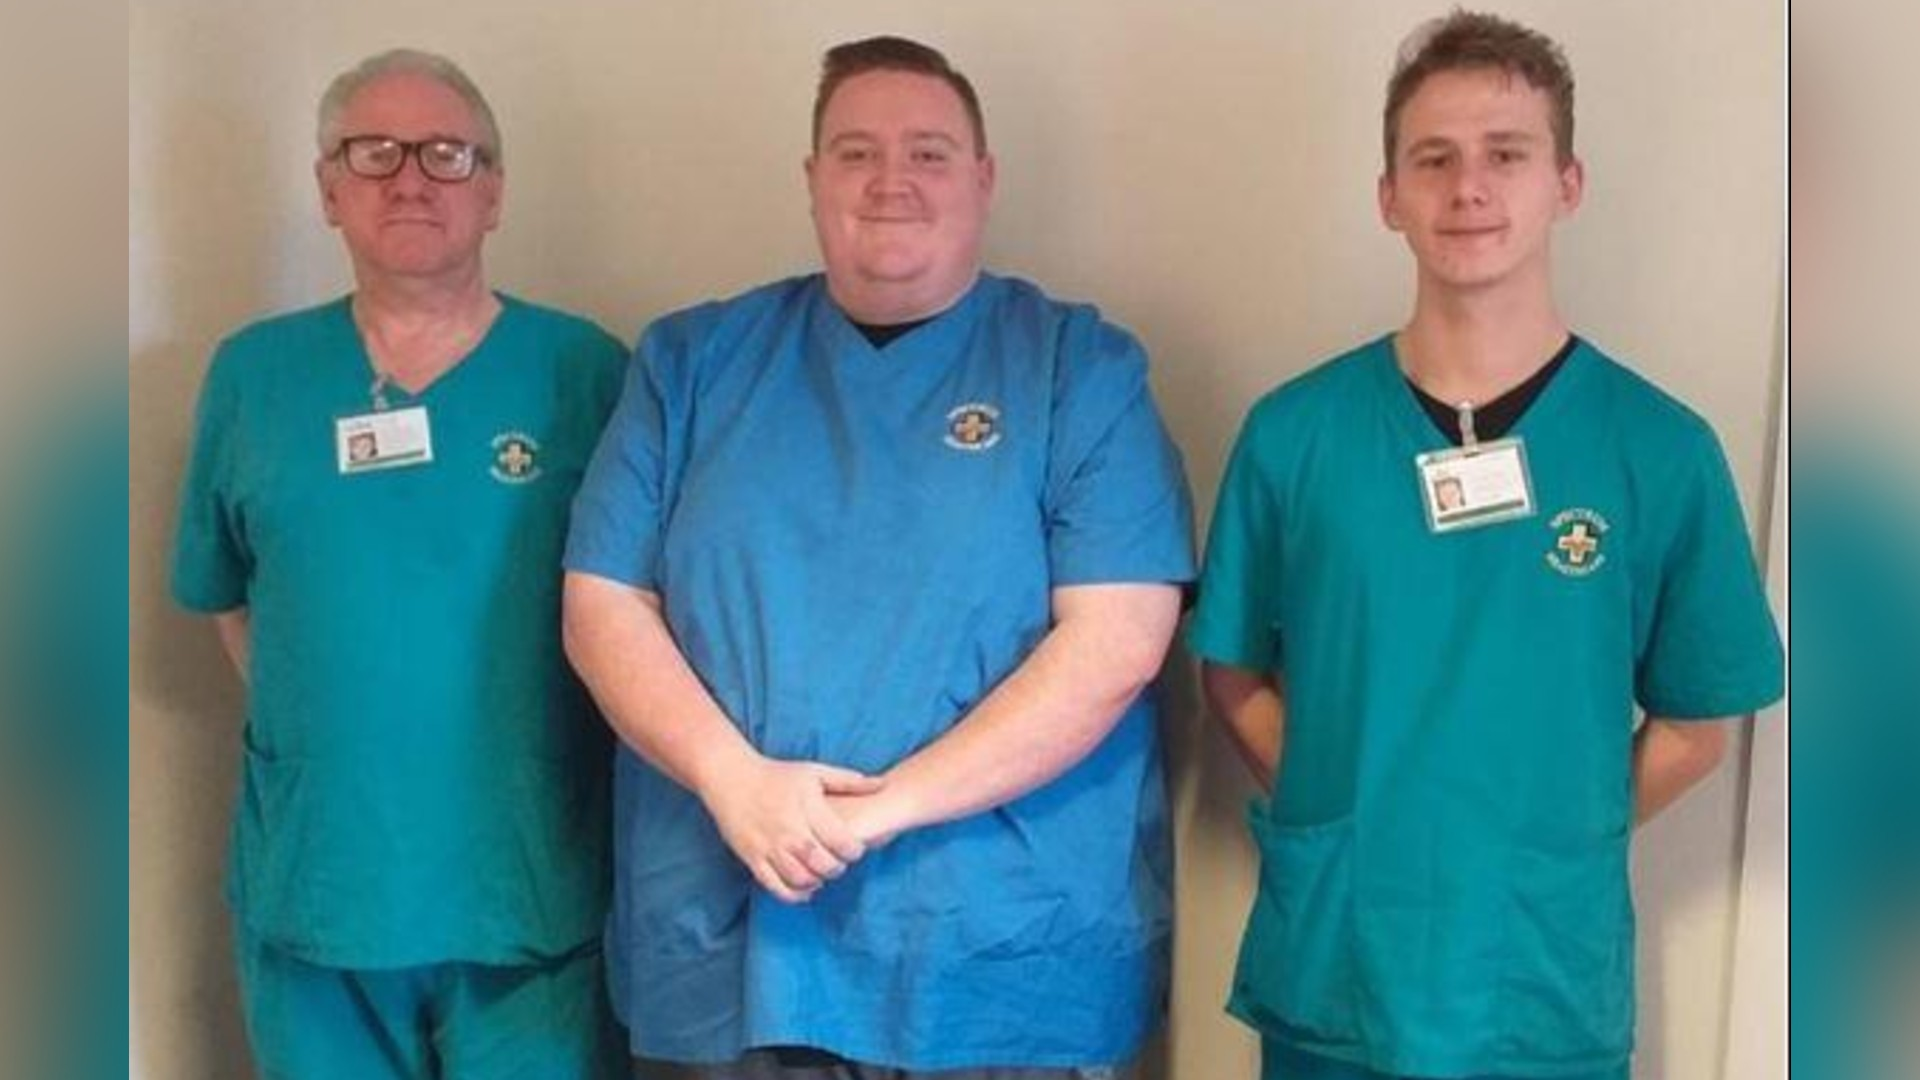 More men homecare workers are needed to help support people in Powys to live in their own homes